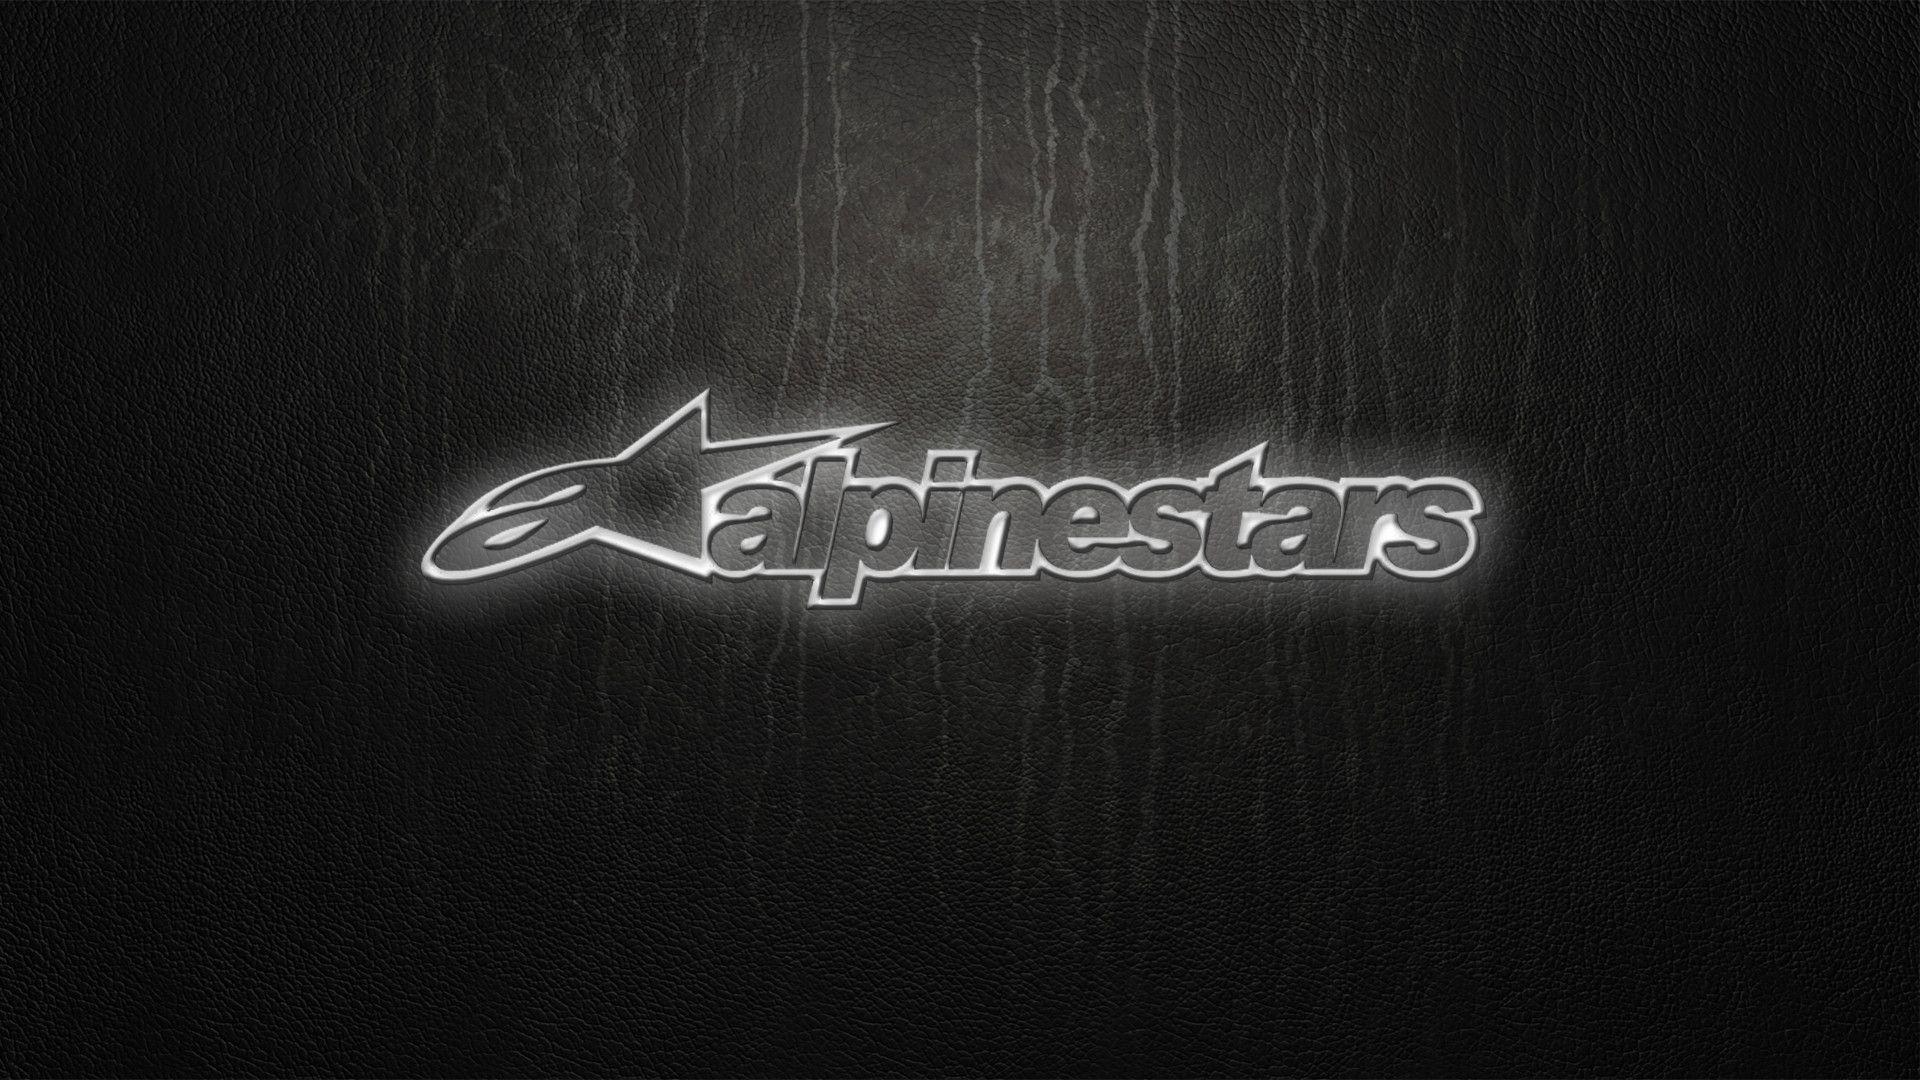 Alpinestars Wallpapers - Wallpaper Cave